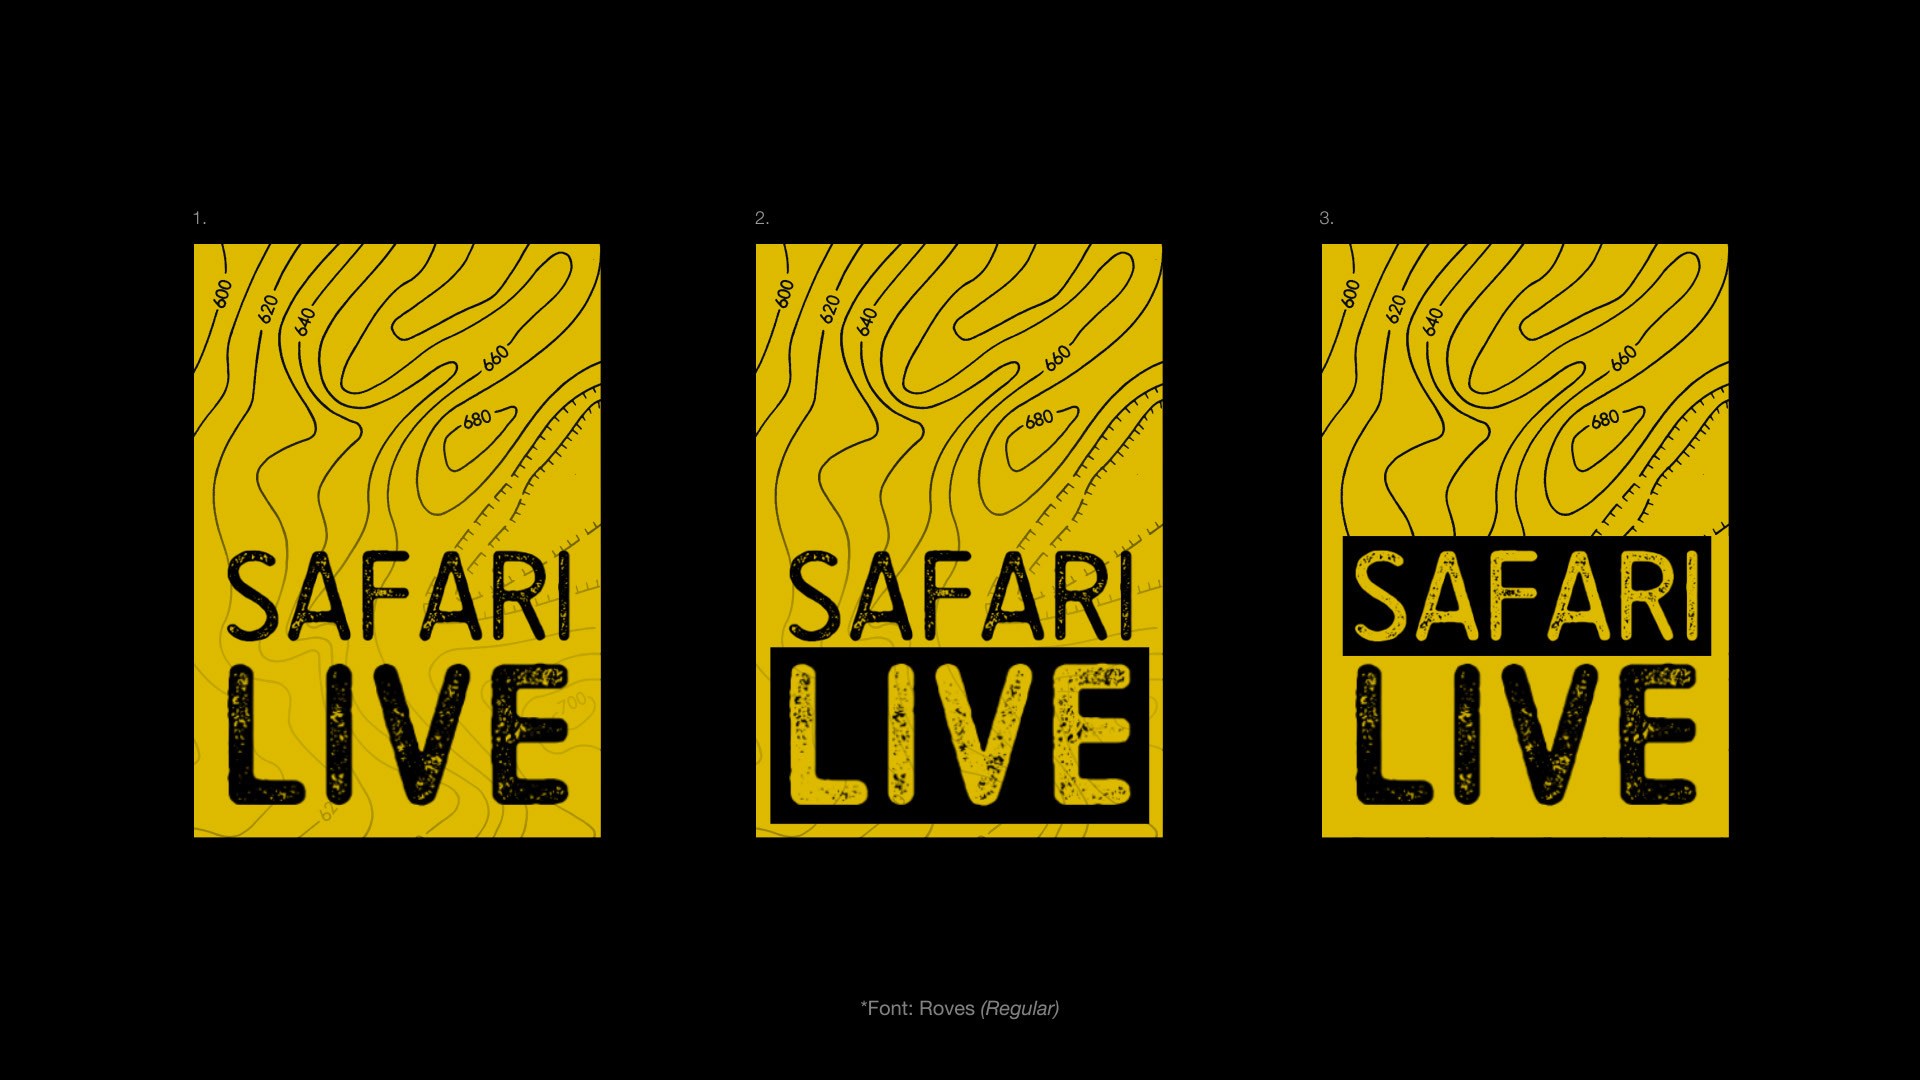 NAT_GEO_SAFARI_LIVE_INITIAL_CONCEPTS_16TH_OCT_17-17